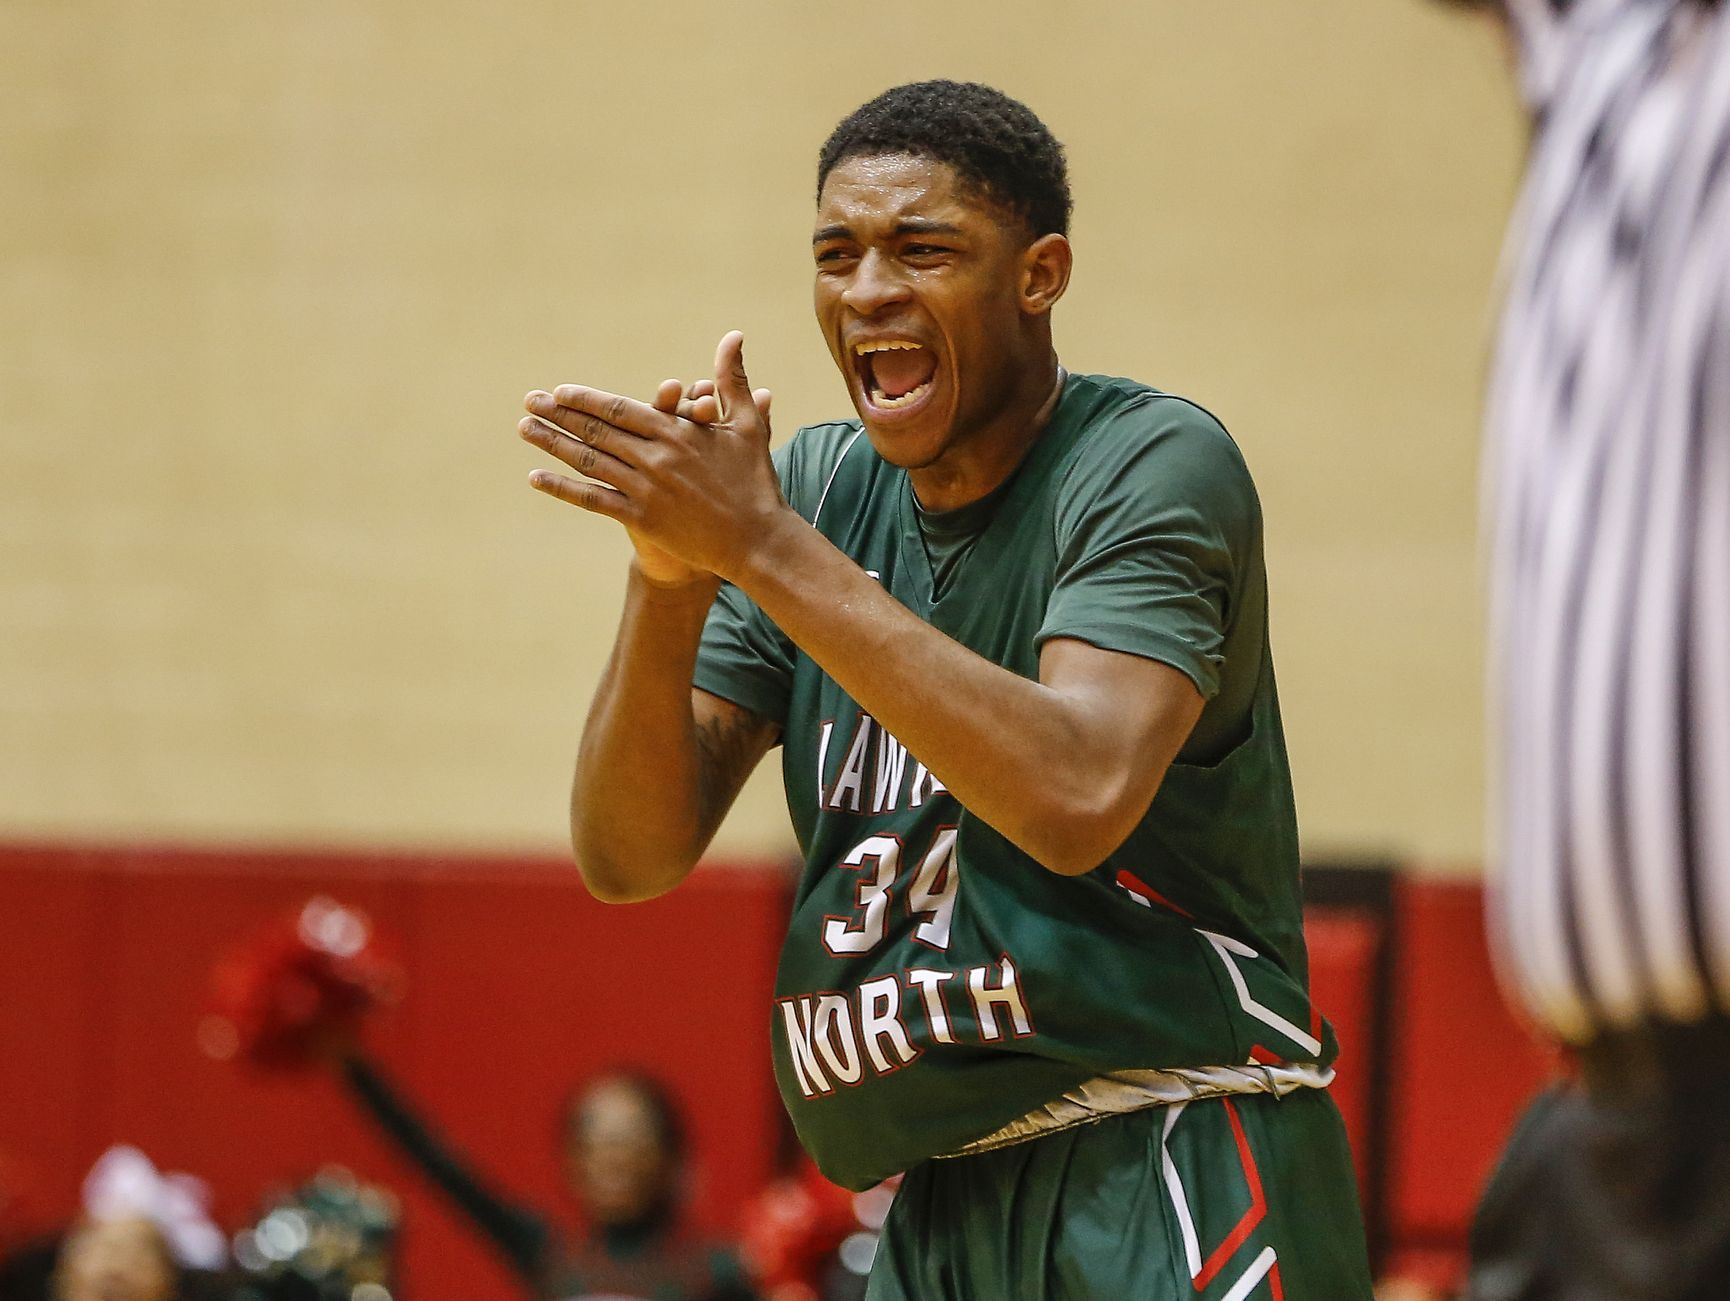 Lawrence North Wildcats Kevin Easley (34) celebrates after connecting on a three-point shot against the North Central Panthers during their IHSAA 4A sectional final basketball game at North Central High School on Saturday, March 4, 2017.